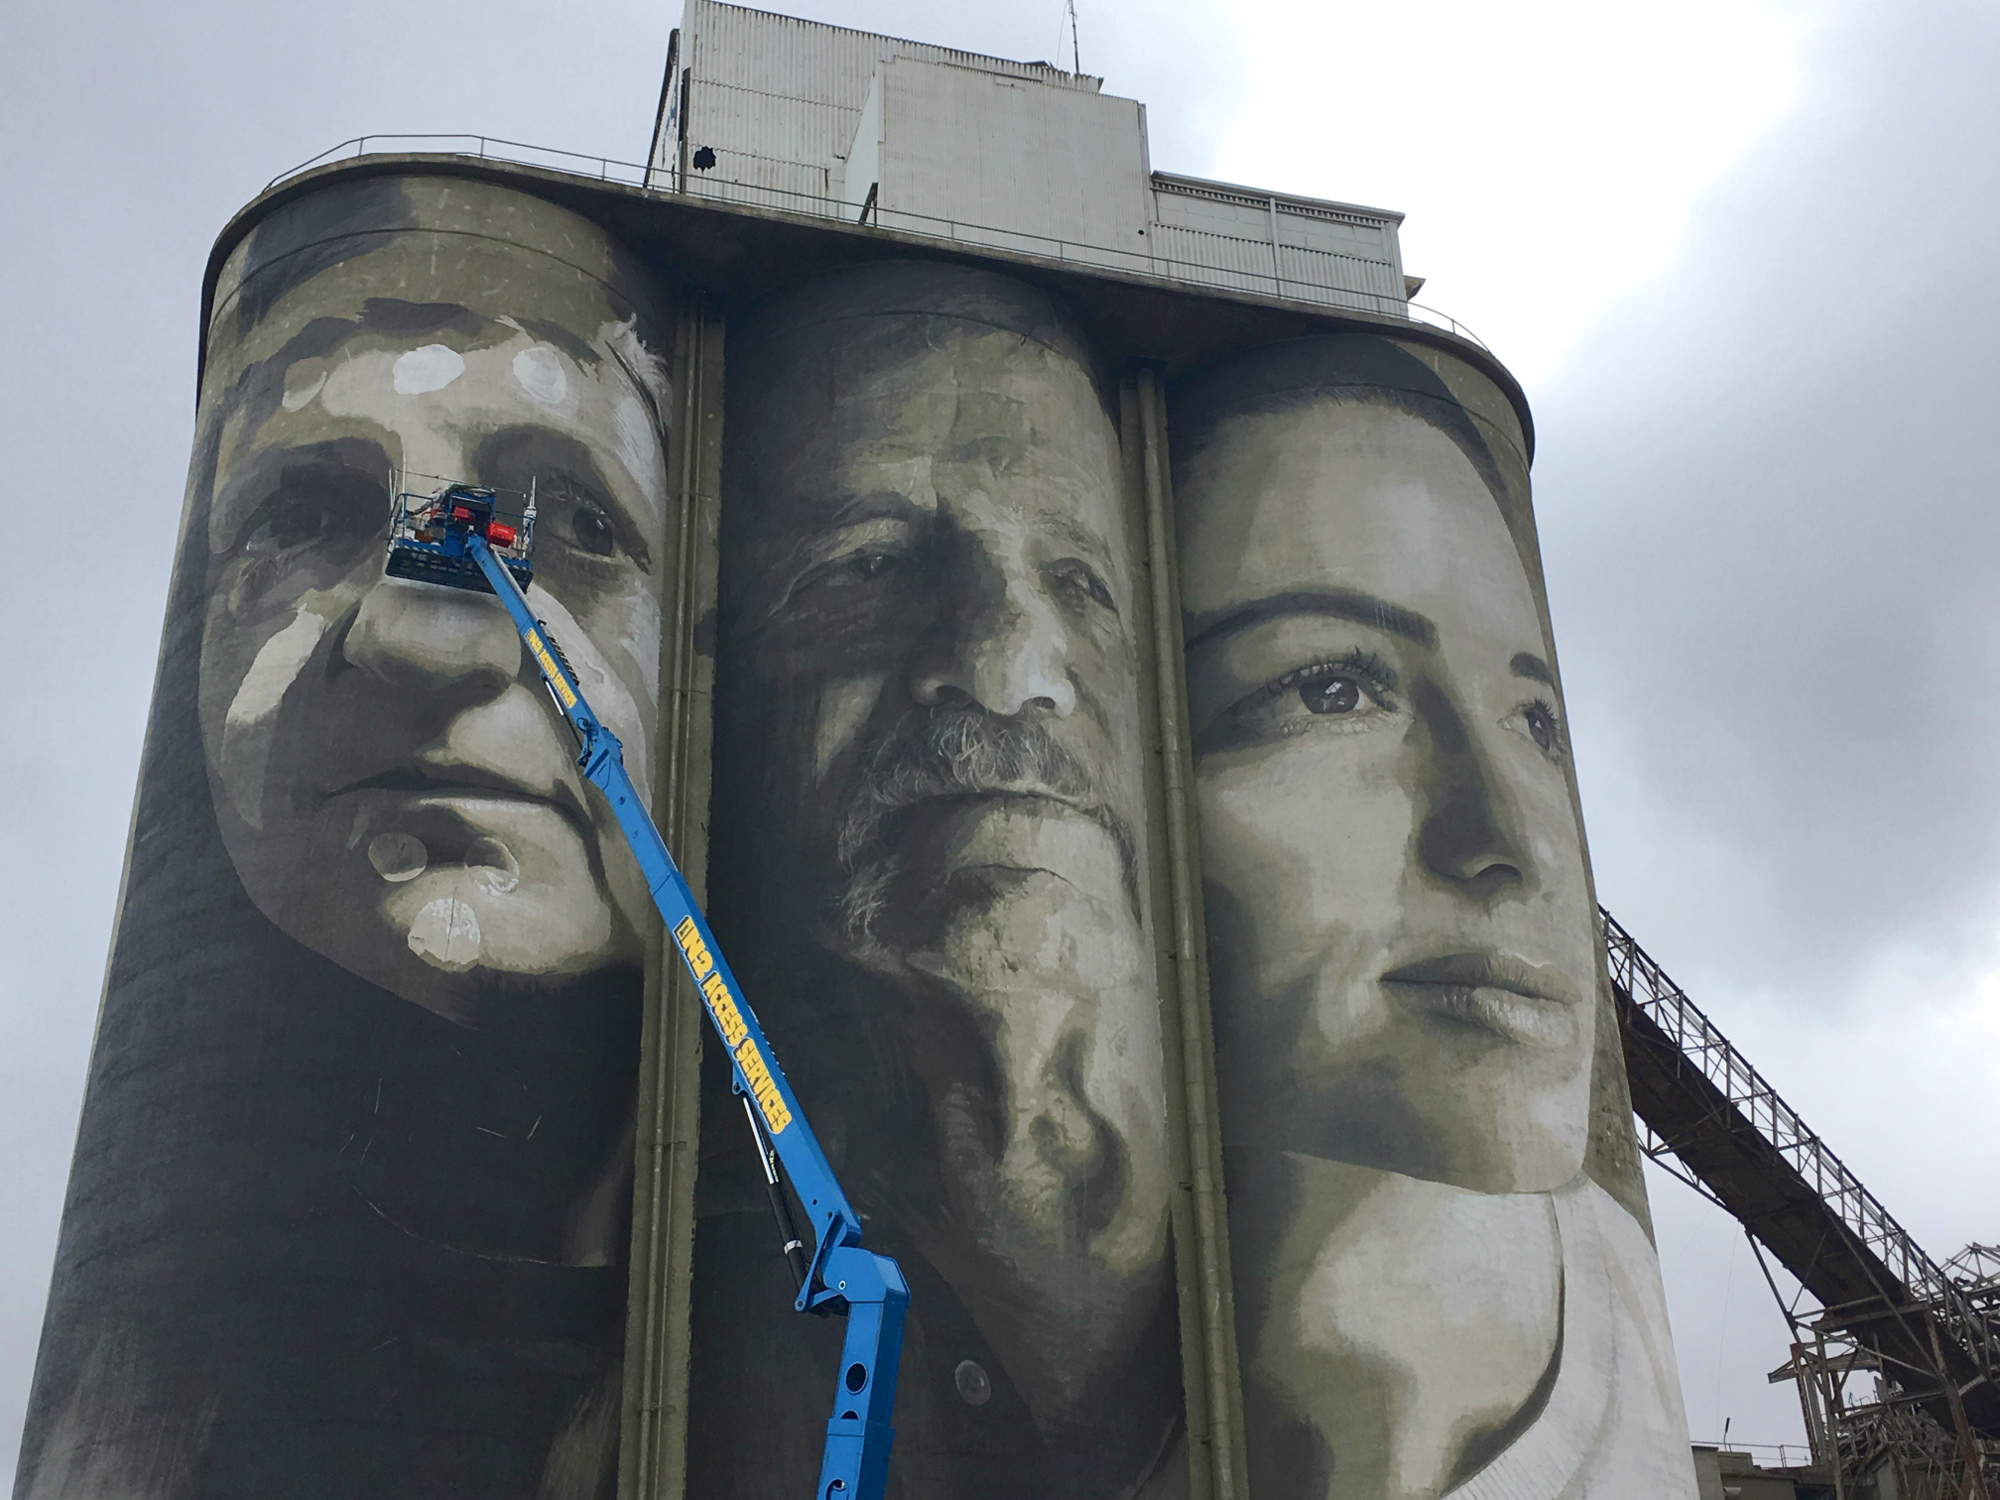 Street artist Rone working on the silo in Geelong